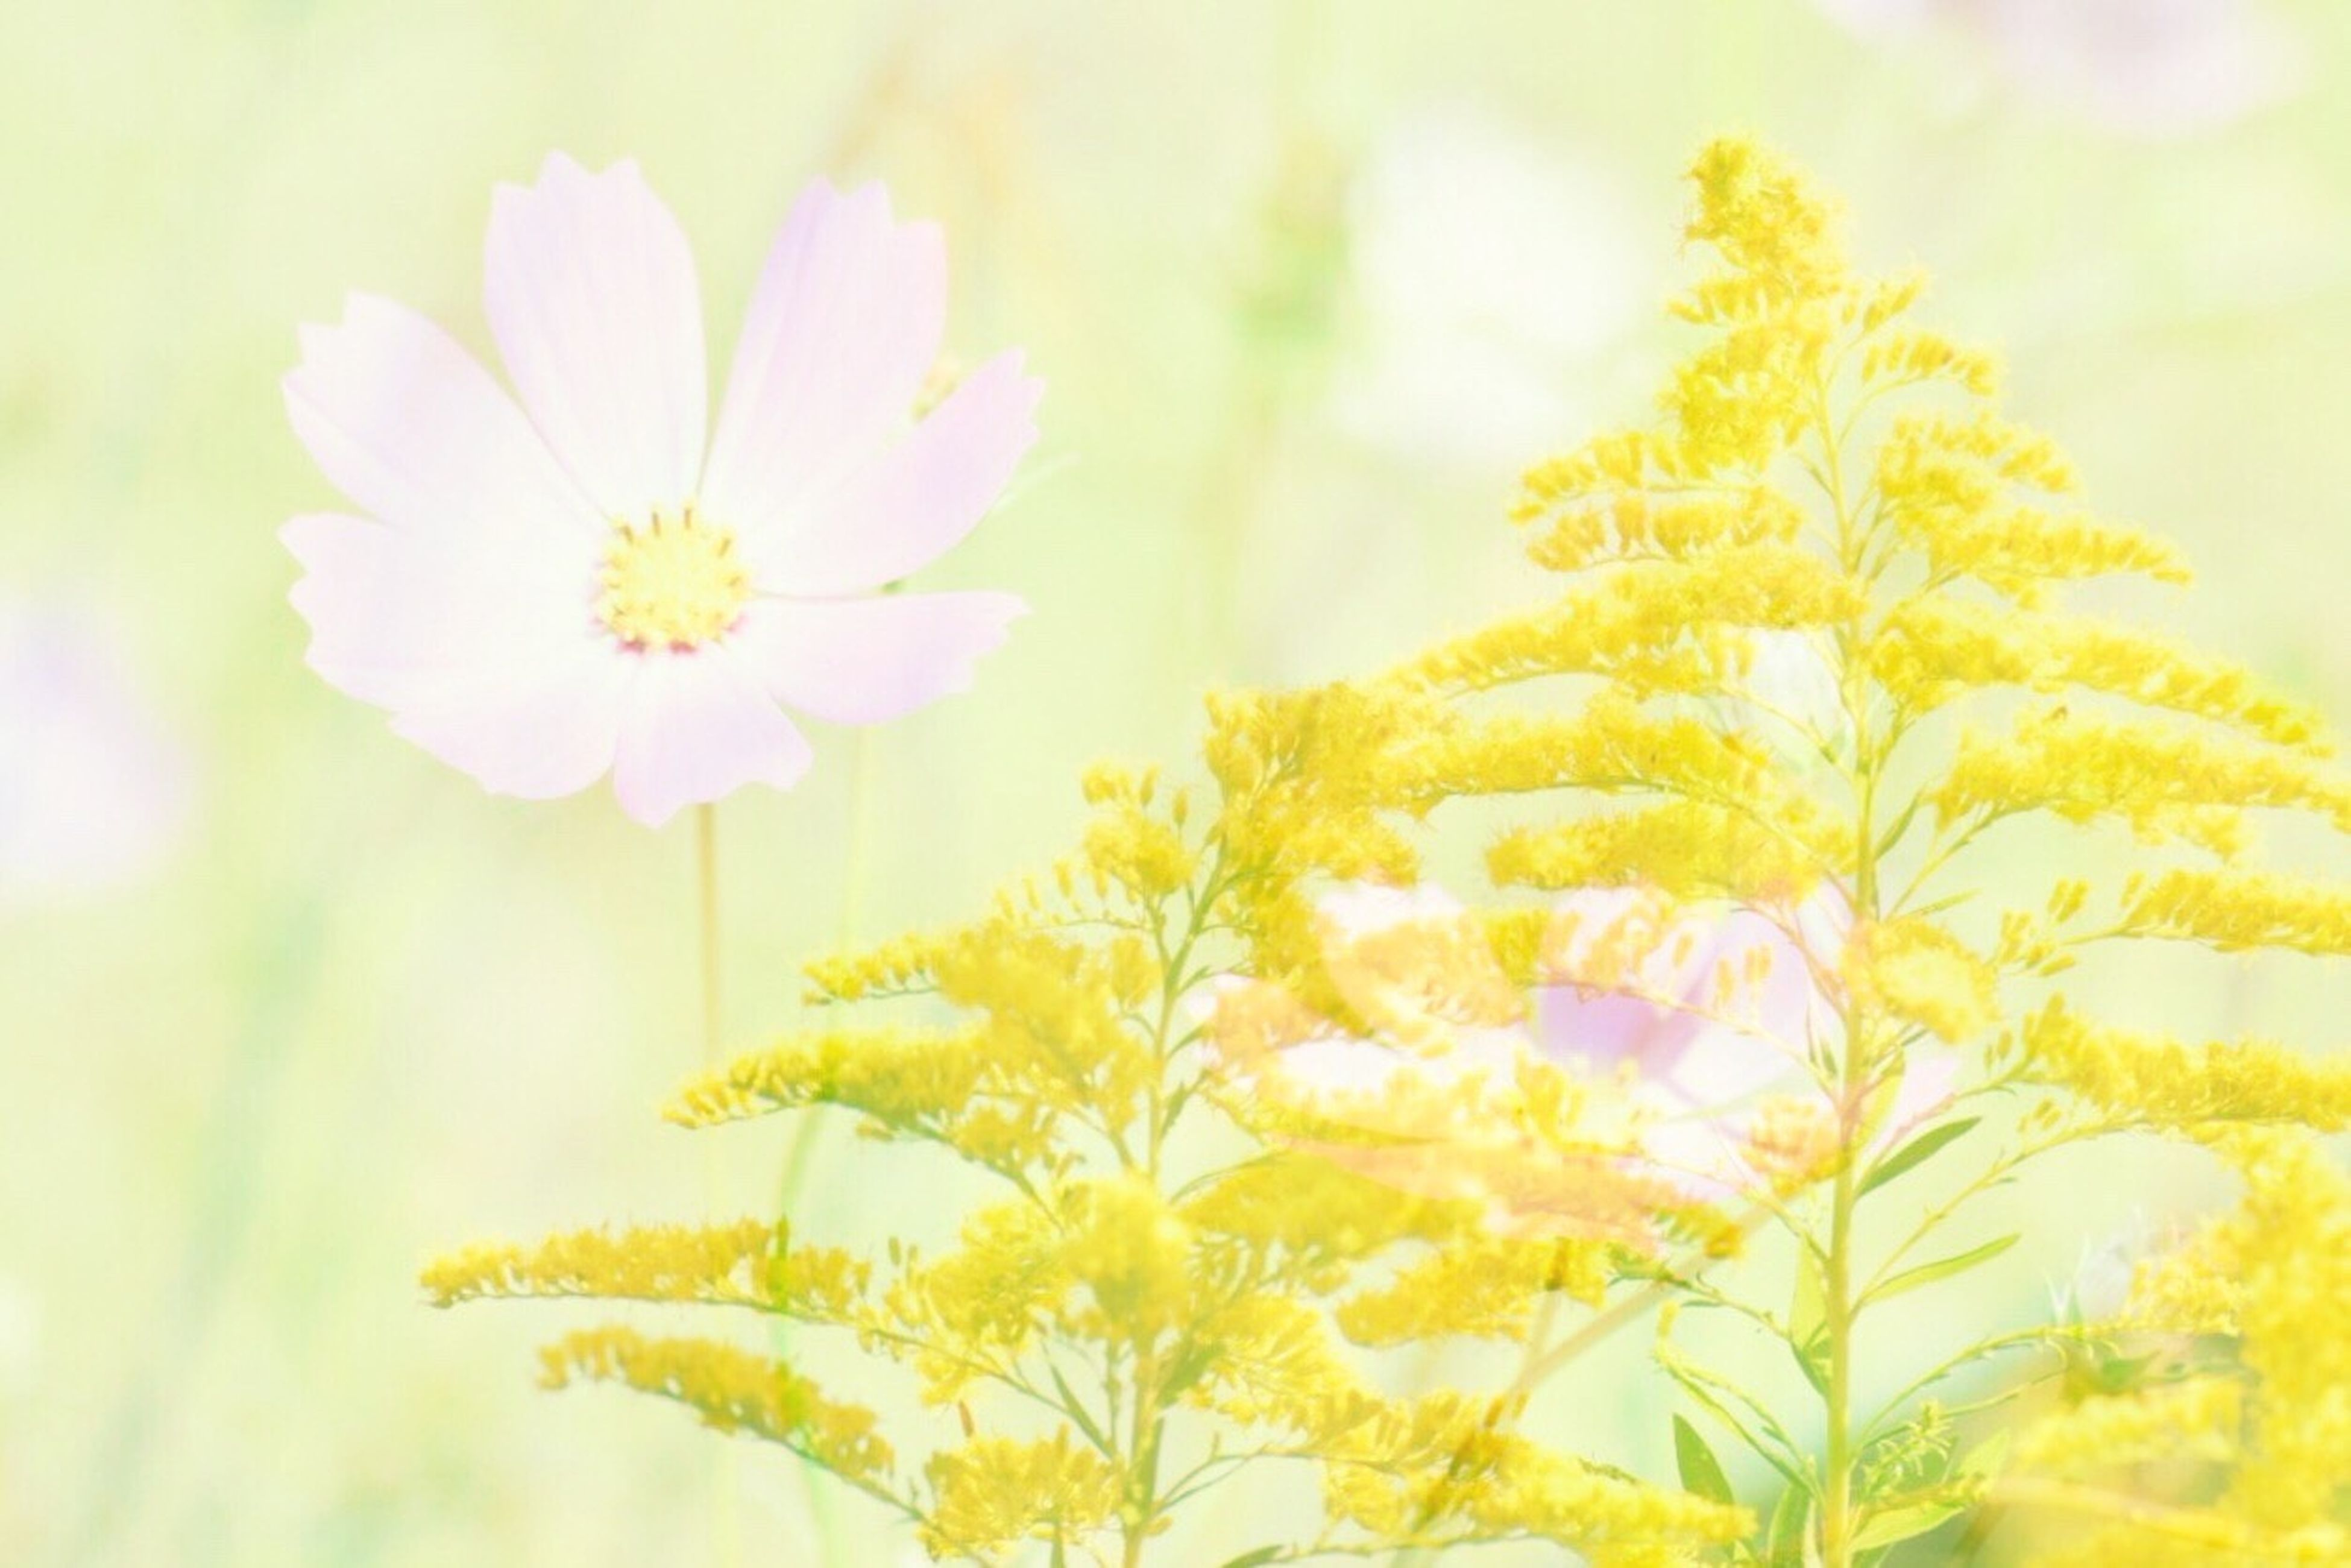 freshness, flower, fragility, petal, flower head, beauty in nature, growth, close-up, stem, nature, selective focus, season, springtime, white color, in bloom, daisy, plant, yellow, botany, blossom, day, outdoors, blooming, focus on foreground, pollen, daisies, bloom, no people, growing